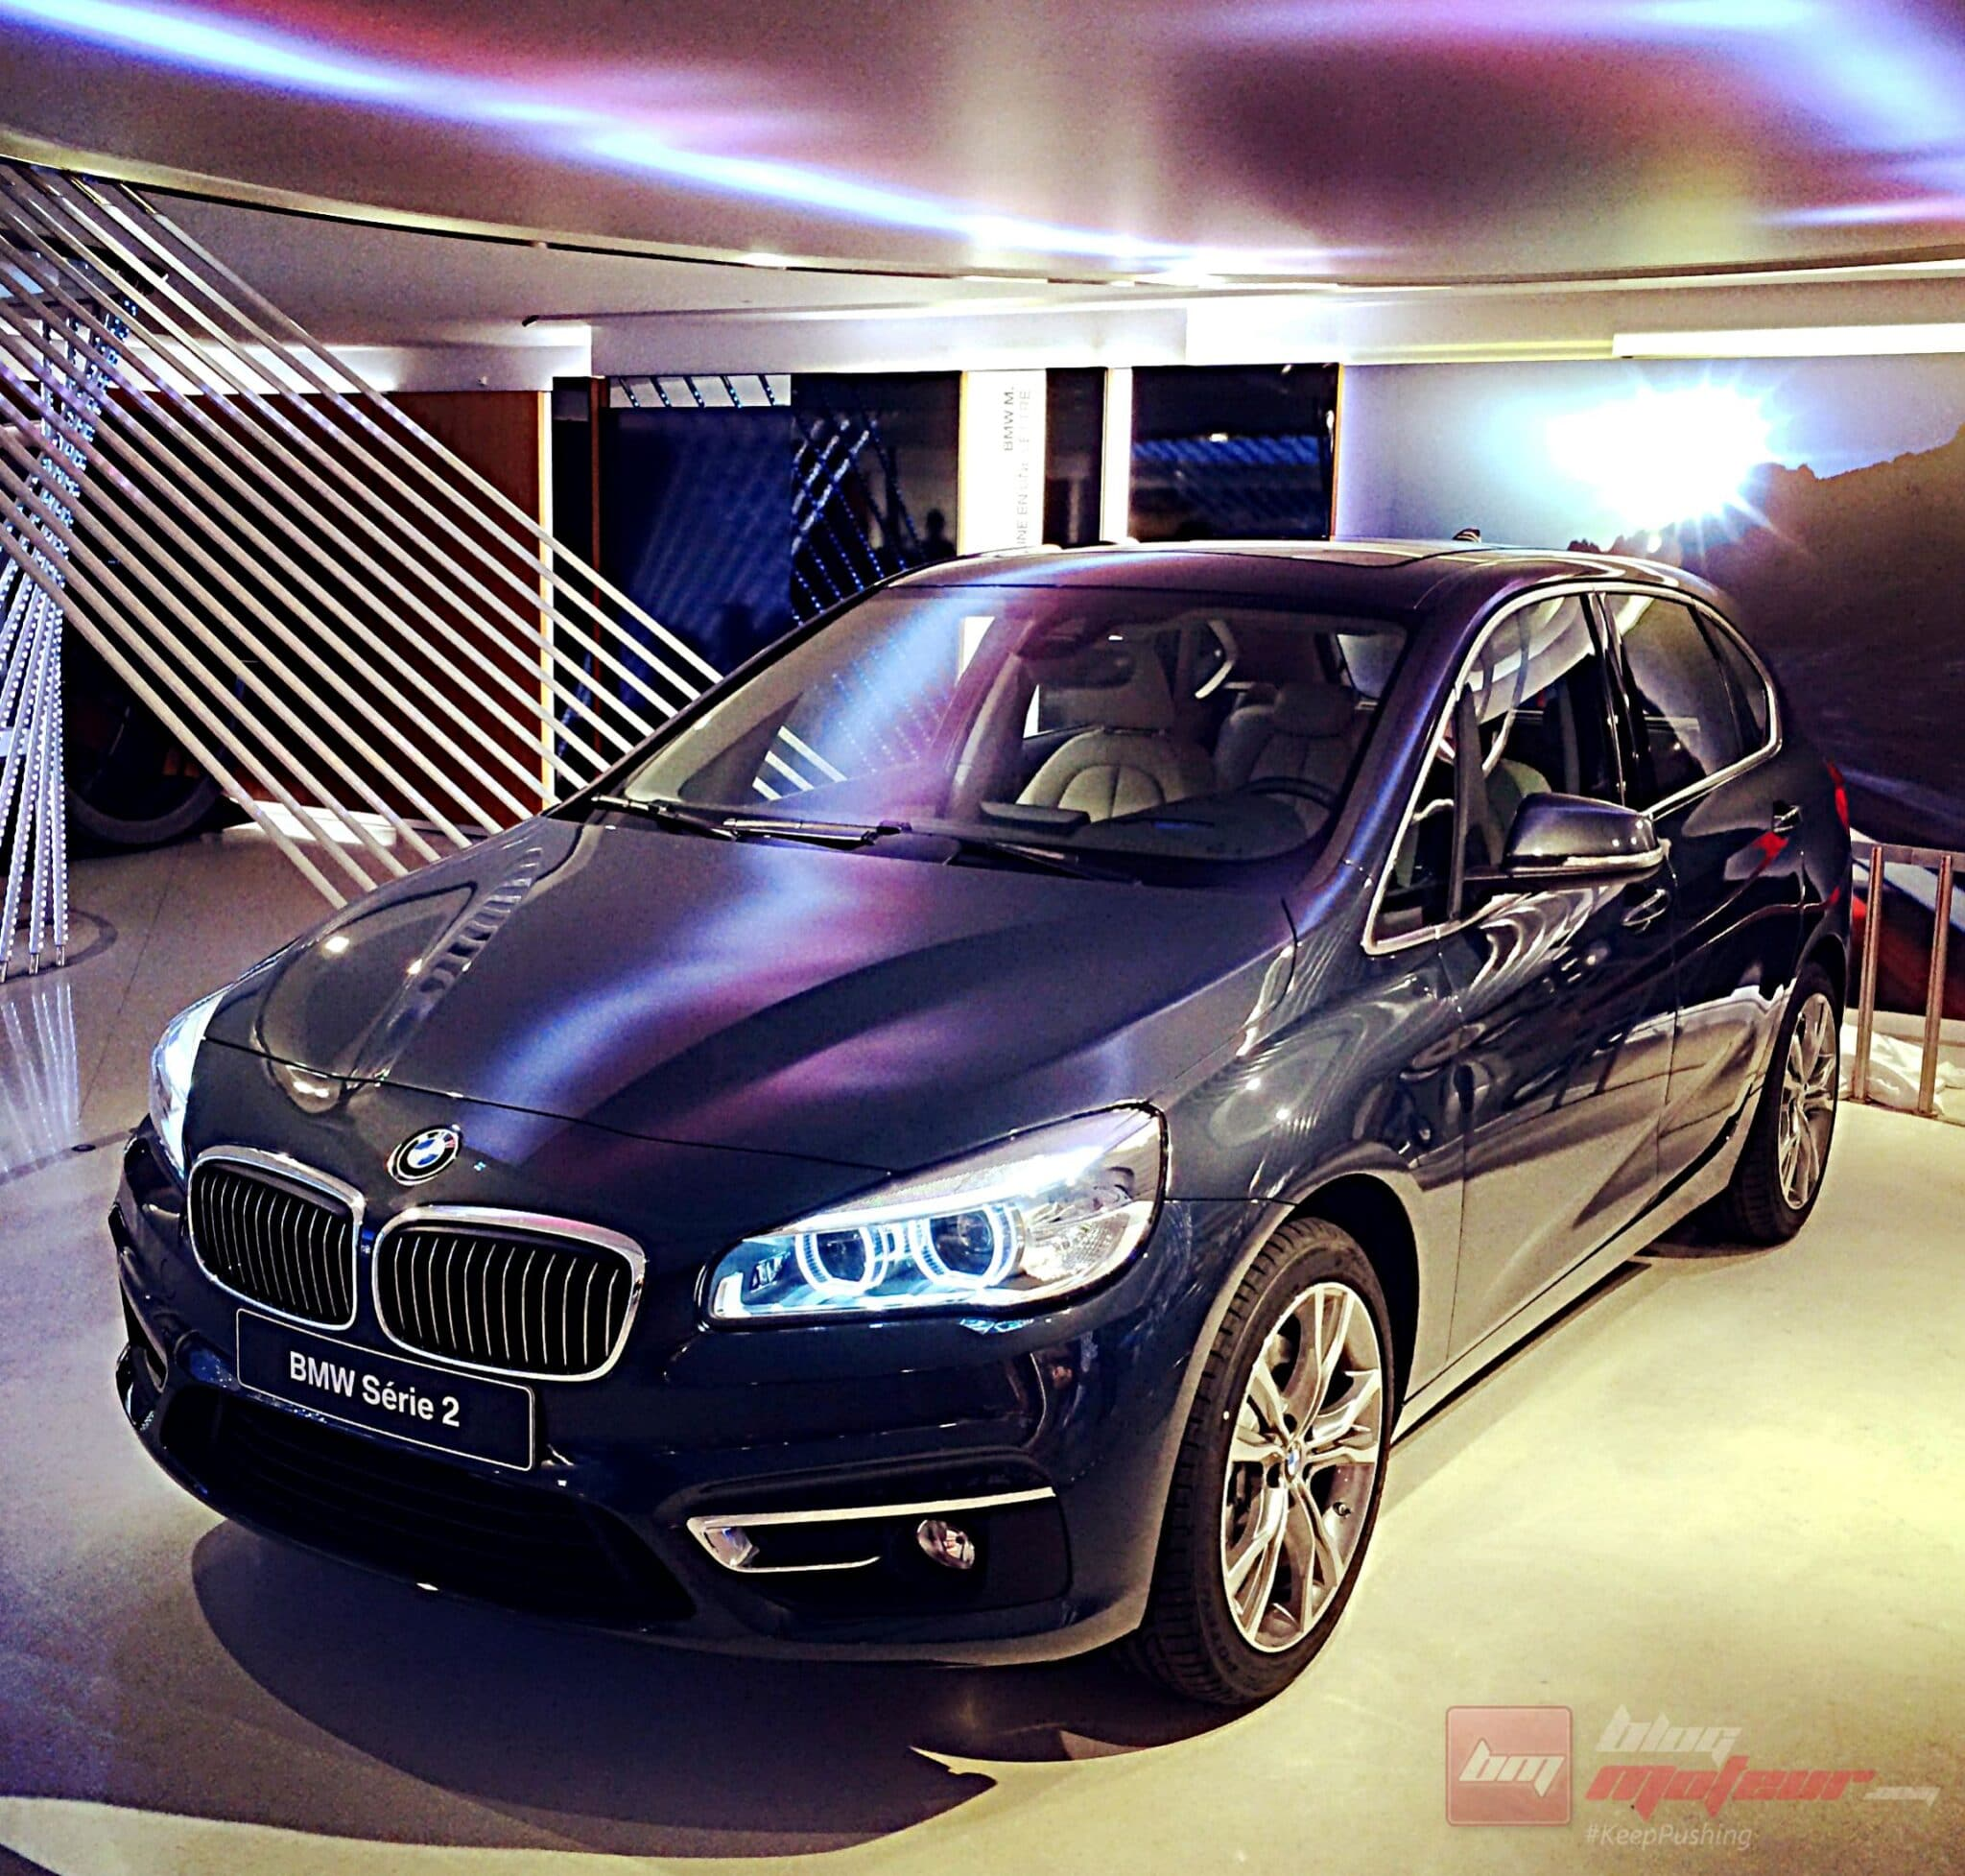 pr sentation des bmw x4 et s rie 2 active tourer. Black Bedroom Furniture Sets. Home Design Ideas